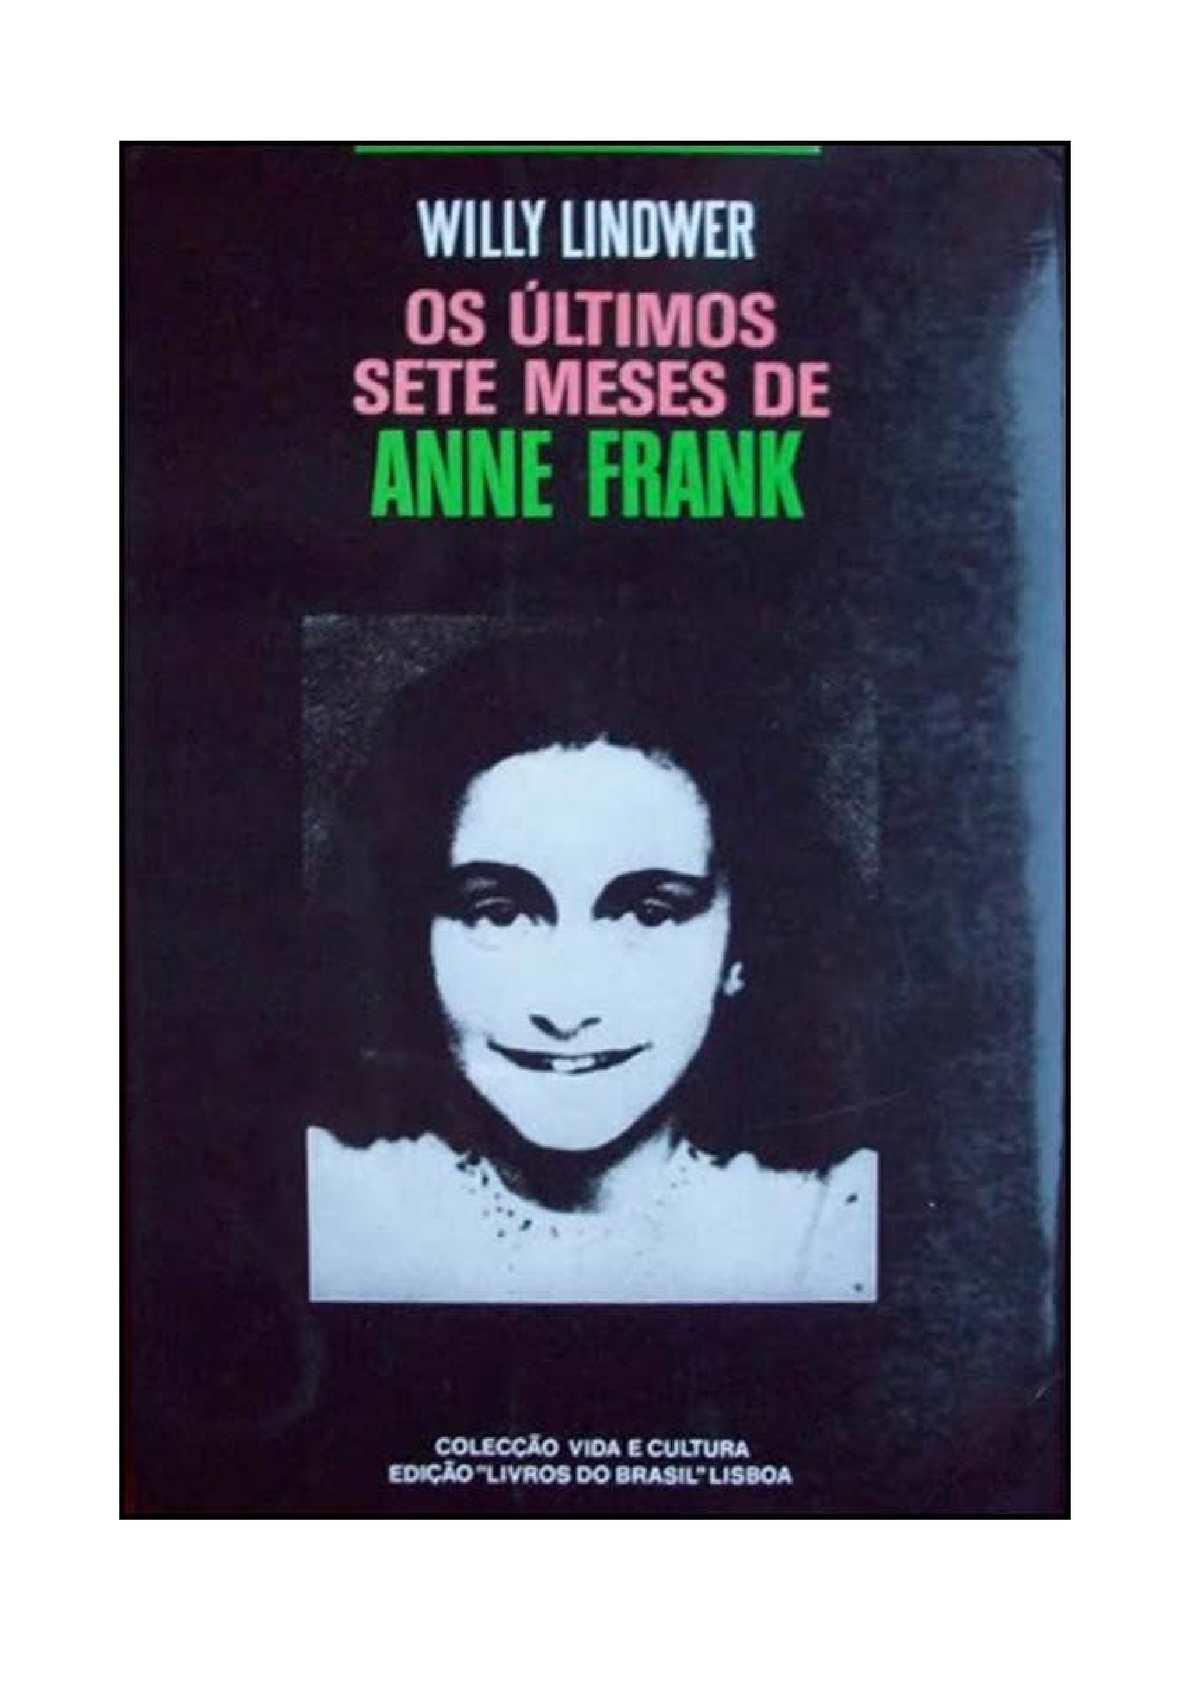 Willy Lindwer - Os últimos sete meses de Anne Frank (Revisado)